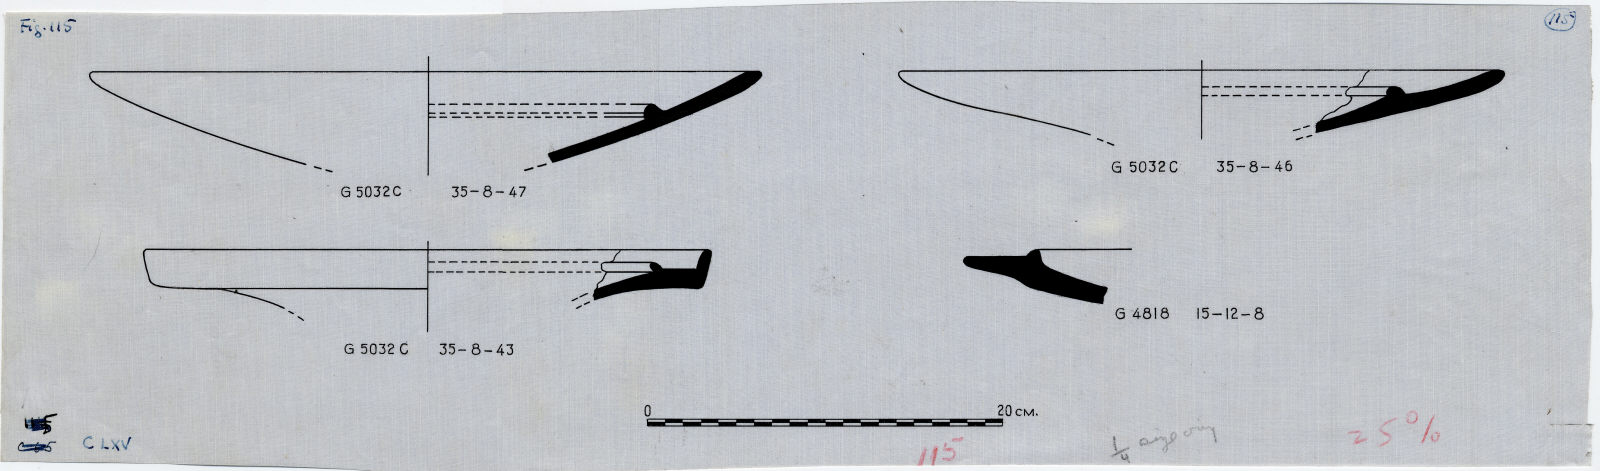 Drawings: Fragments of pottery bowls from G 4818 and G 5032